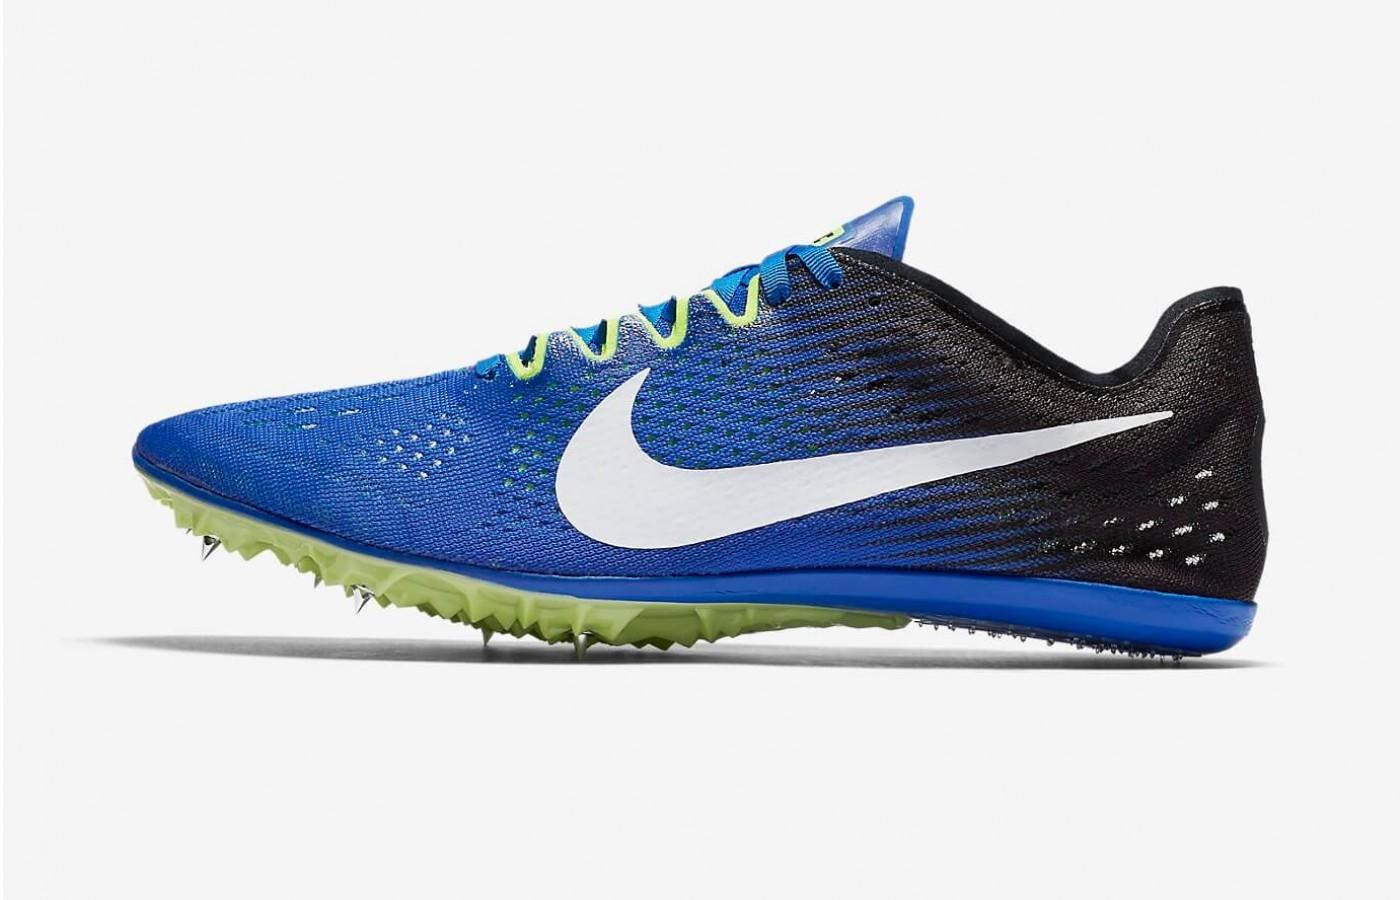 The Zoom Victory 3 showcases Nike's trademark impeccable style.